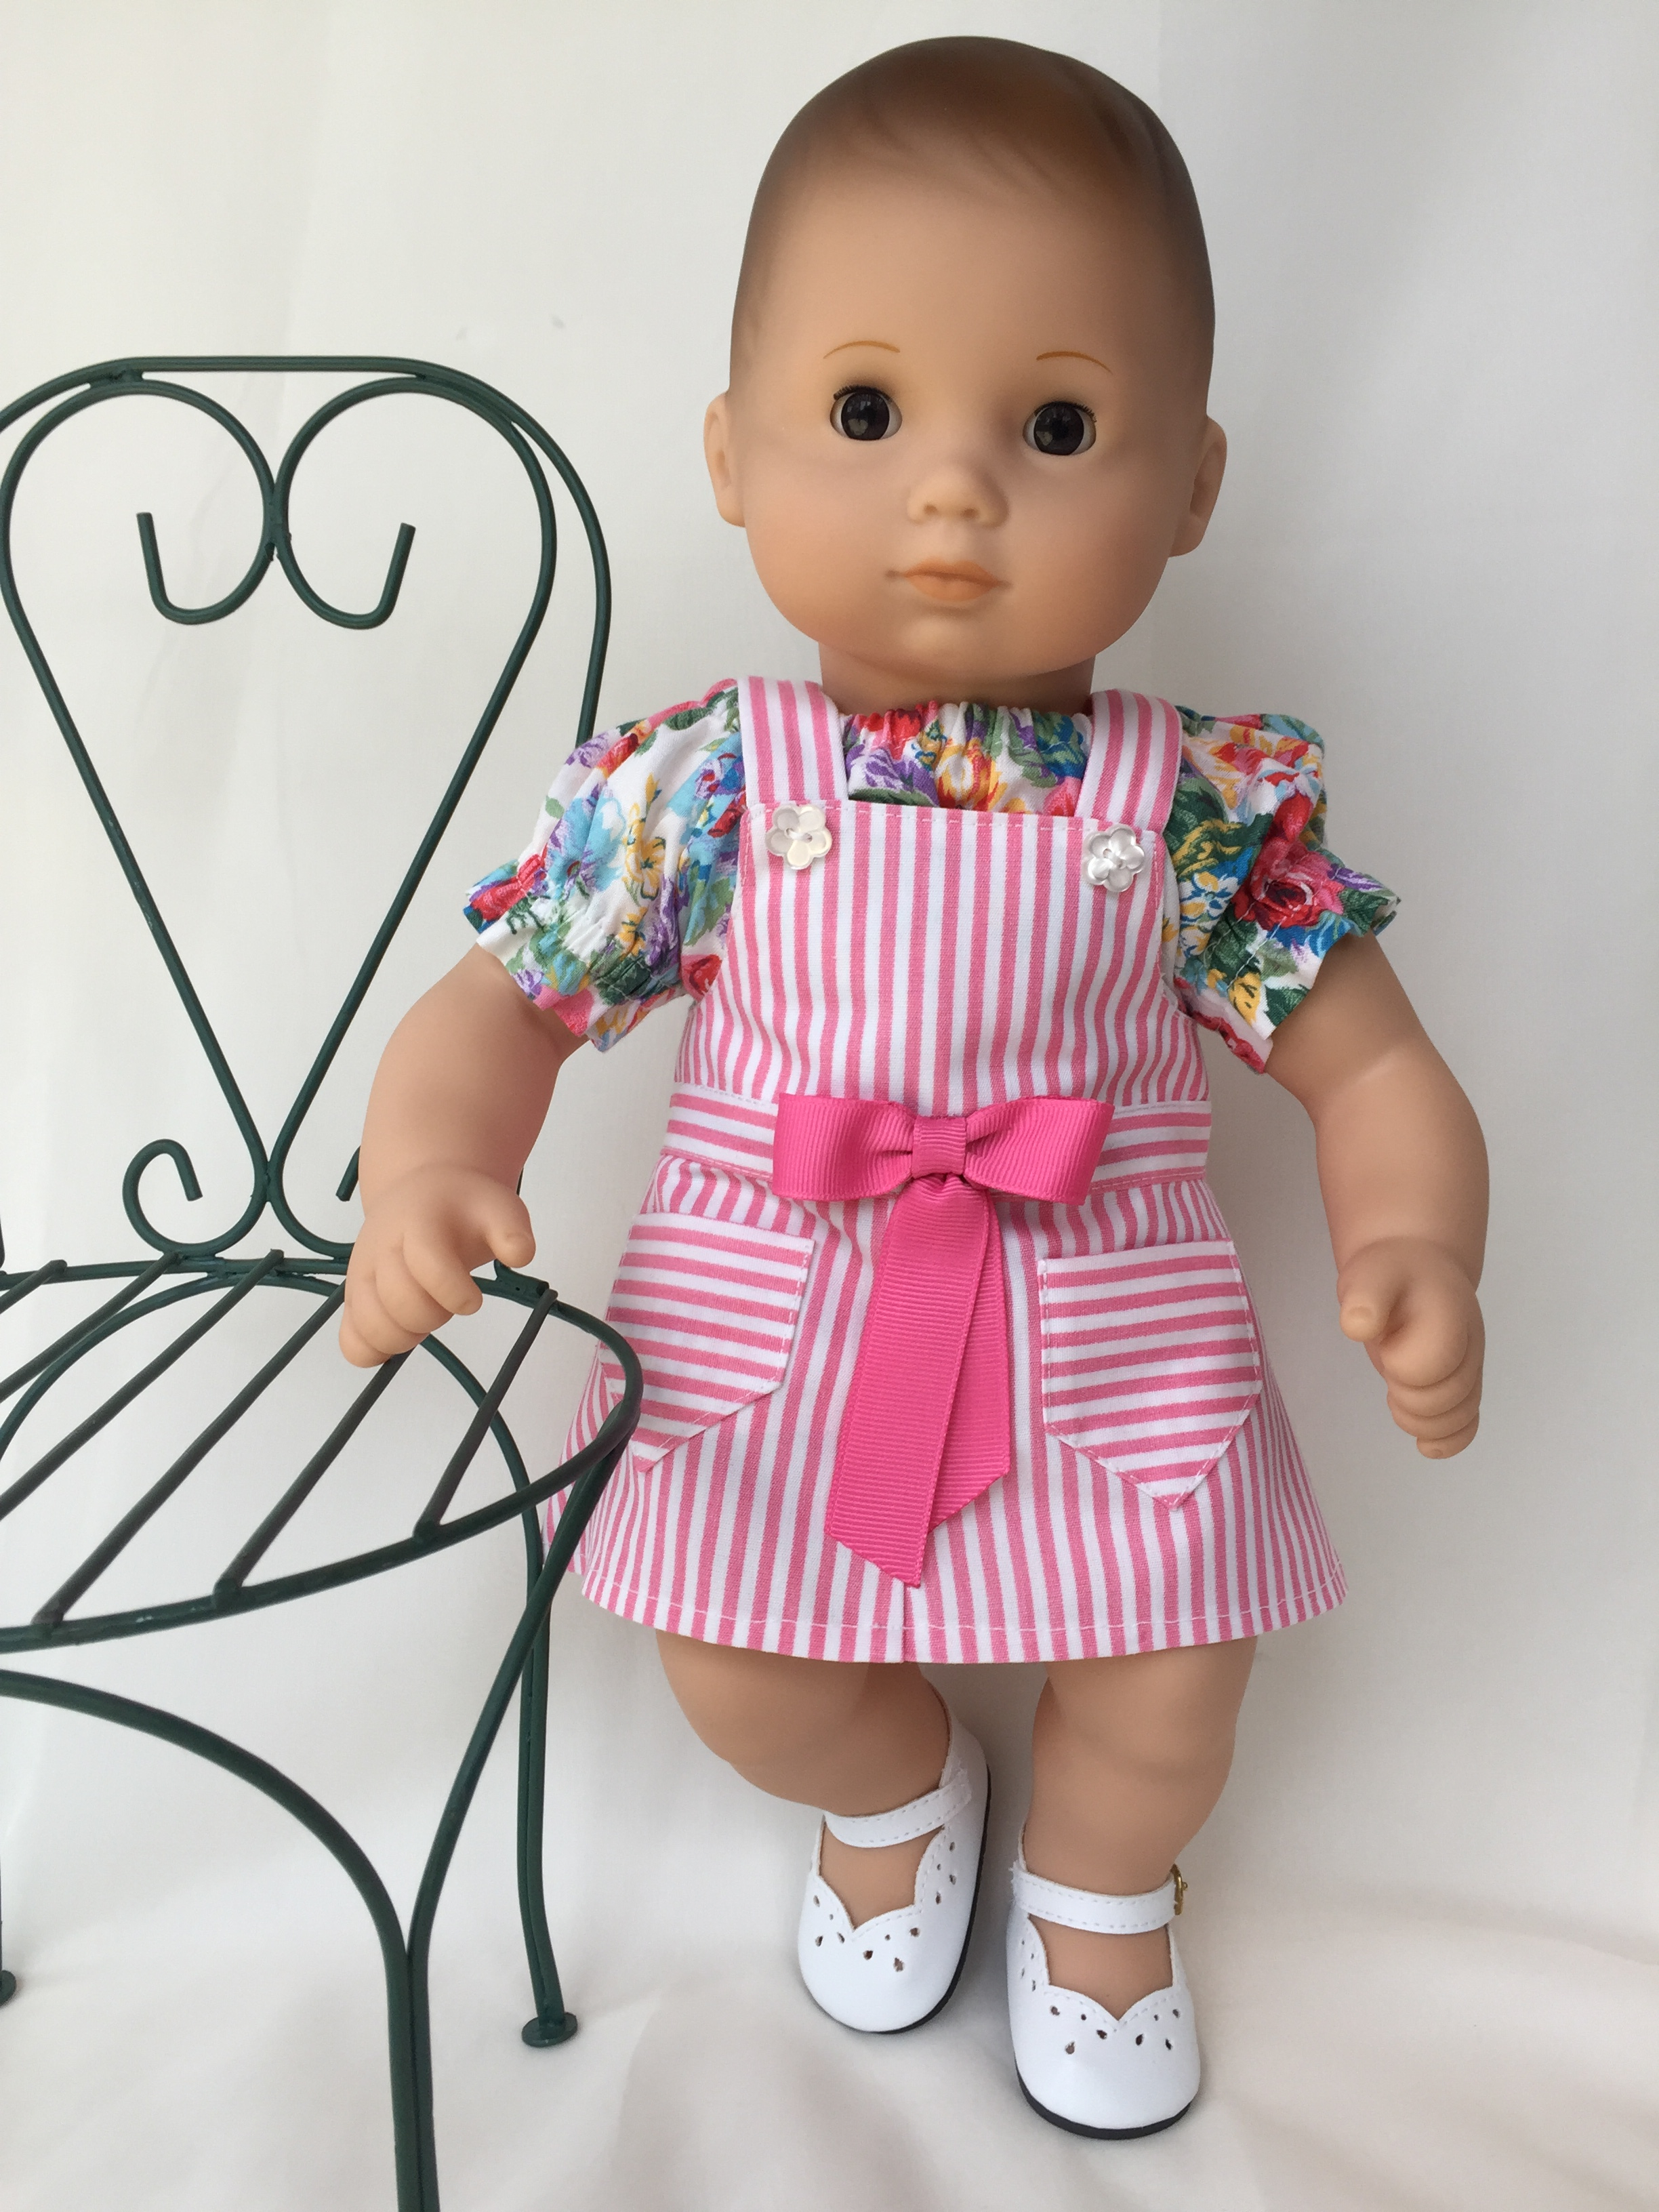 Make overalls for your dolls with the quick and easy Backyard Bibs 18 inch doll PDF sewing pattern by oH Sew Kat! #blairewilson #overallspattern #diy #ohsewkat